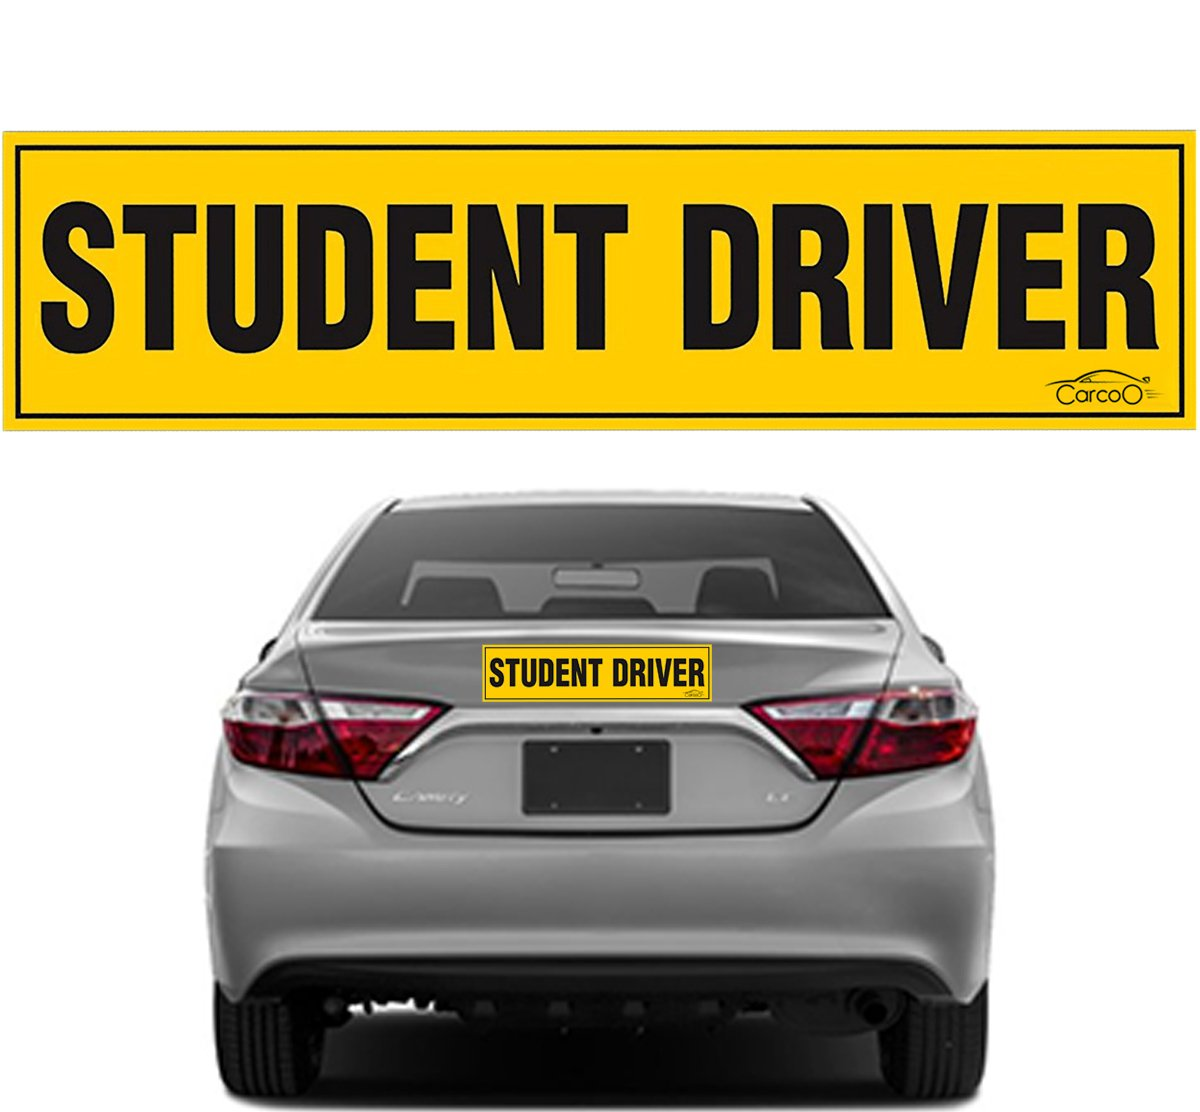 Student driver magnet for car new driver magnet student driver bumper sticker reflective